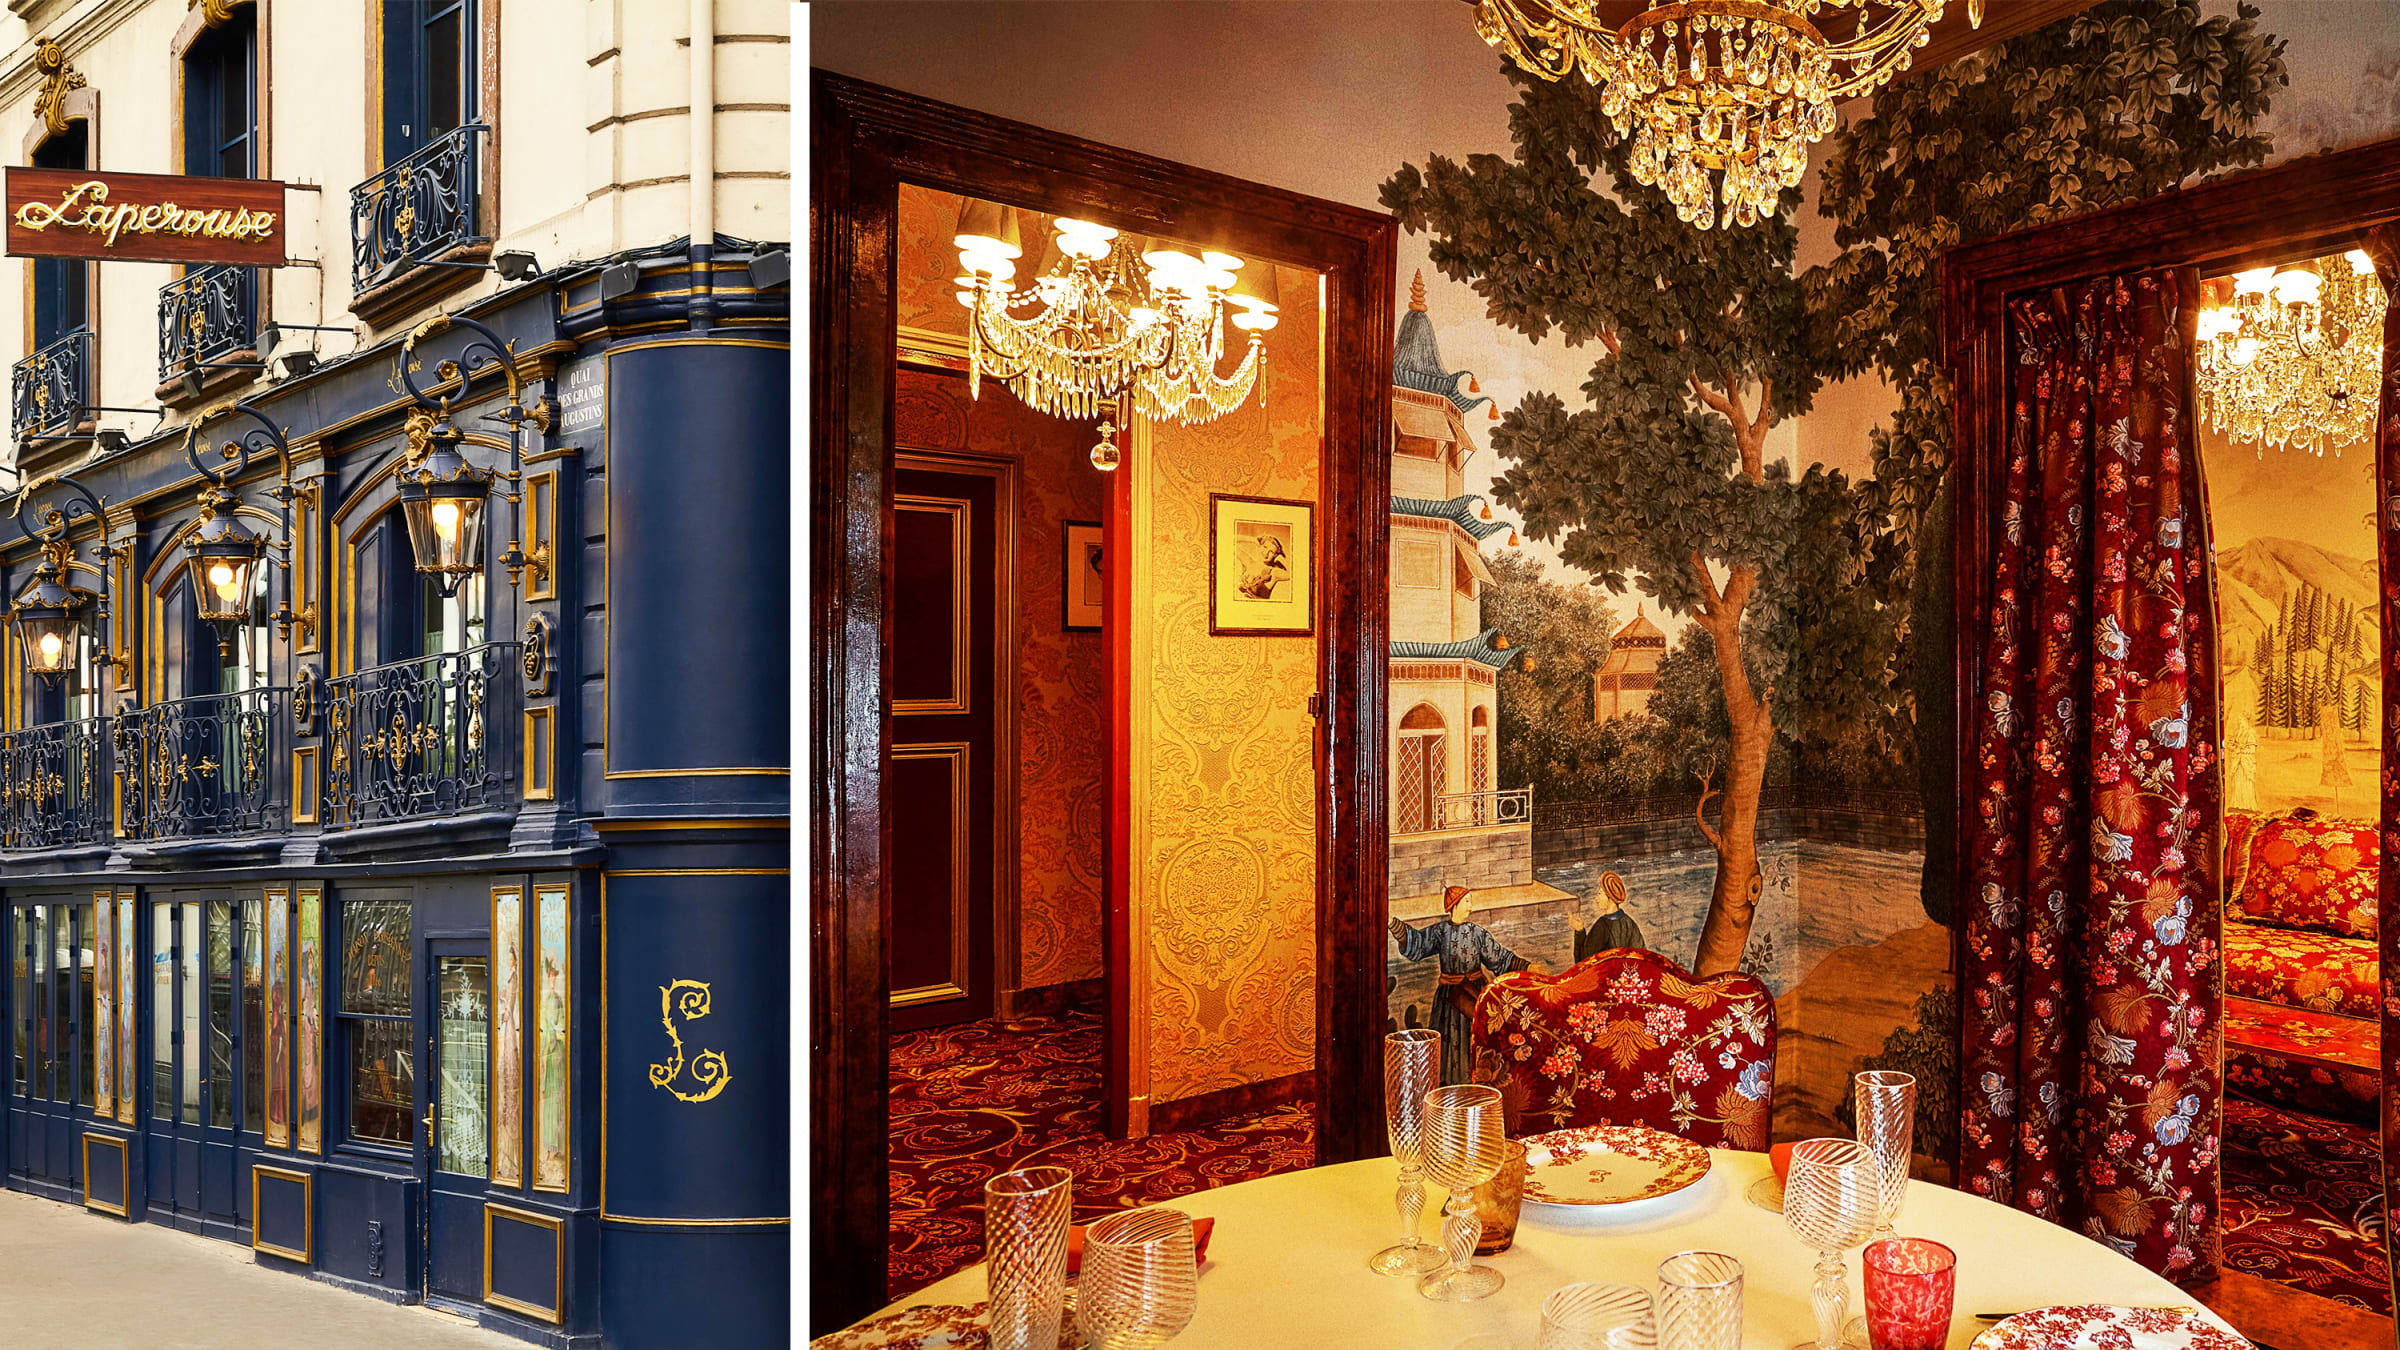 Lapérouse, Paris' Most Scandalous Restaurant, Reopens (Private Rooms and All)